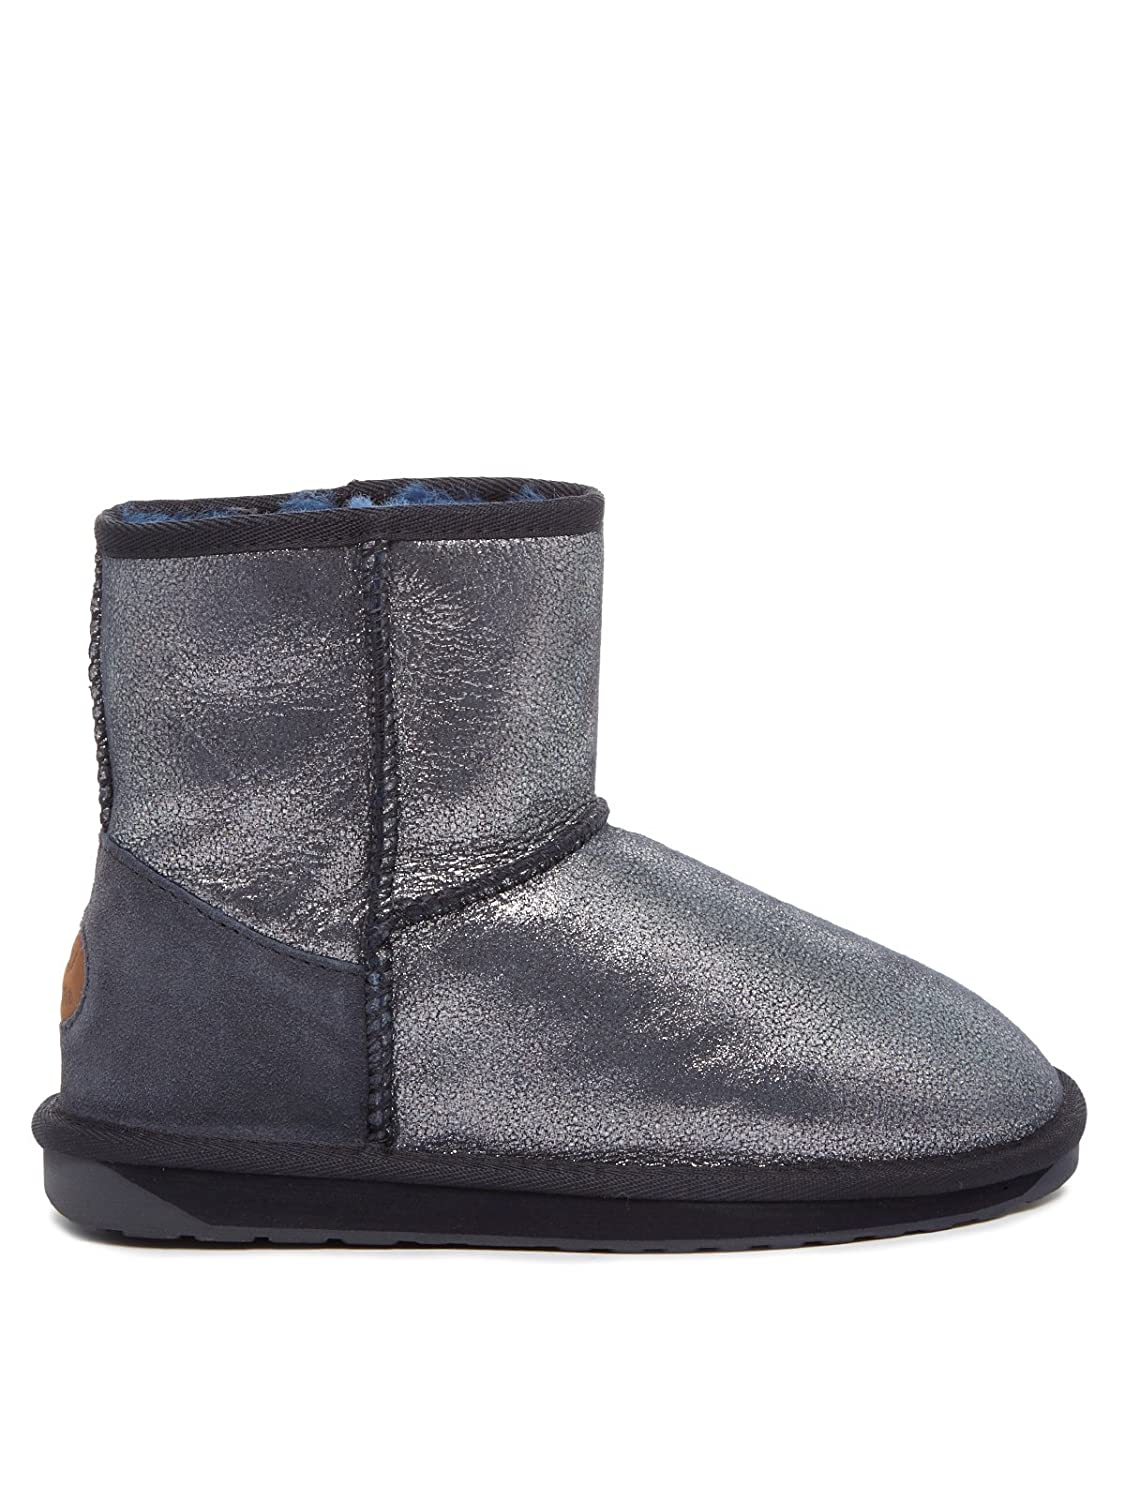 EMU Damen Stinger Metallic Mini Midnight Schneestiefel